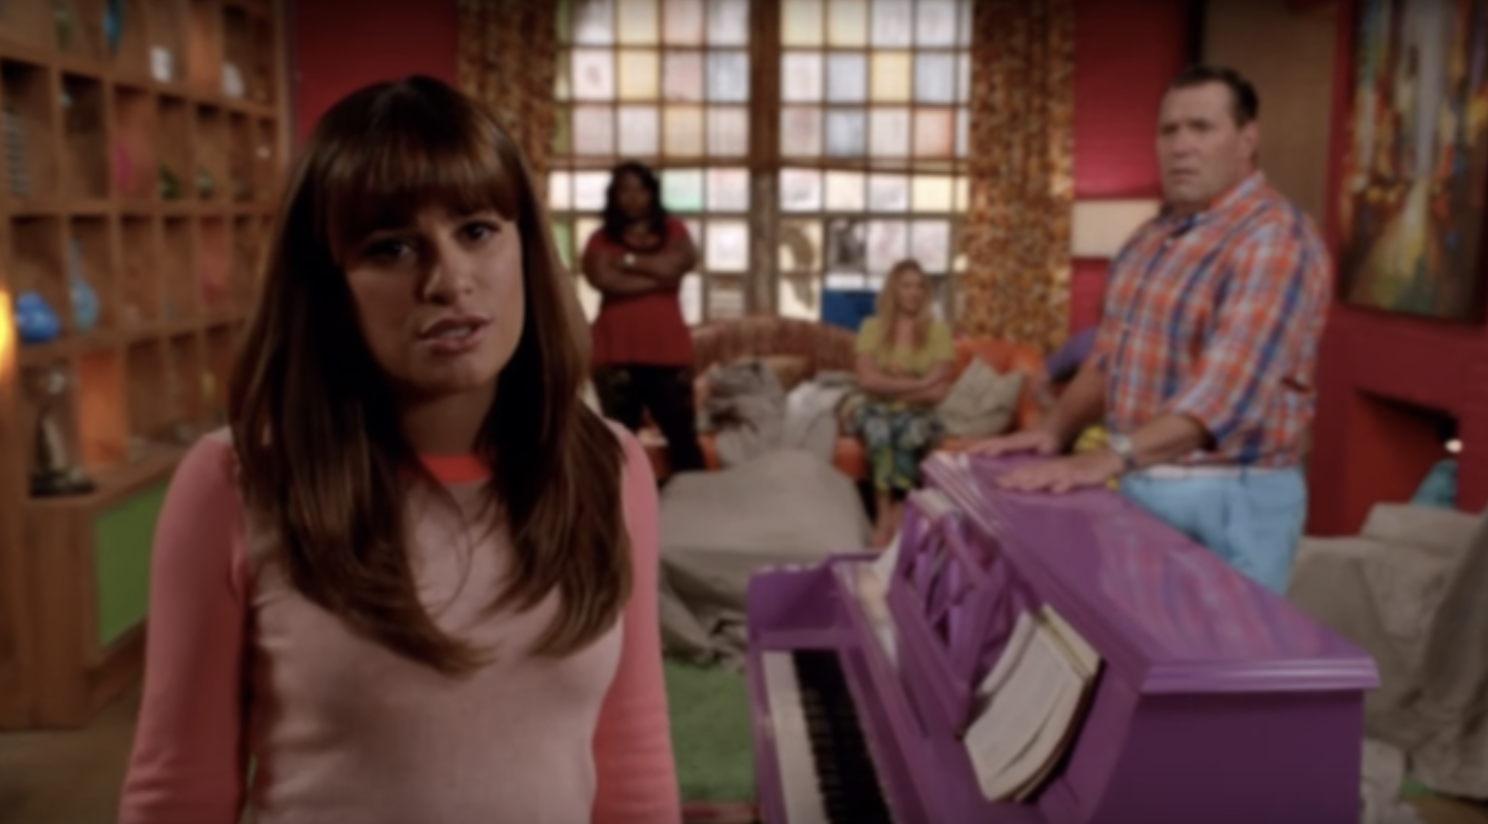 A scene from an episode of Rachel's canceled show